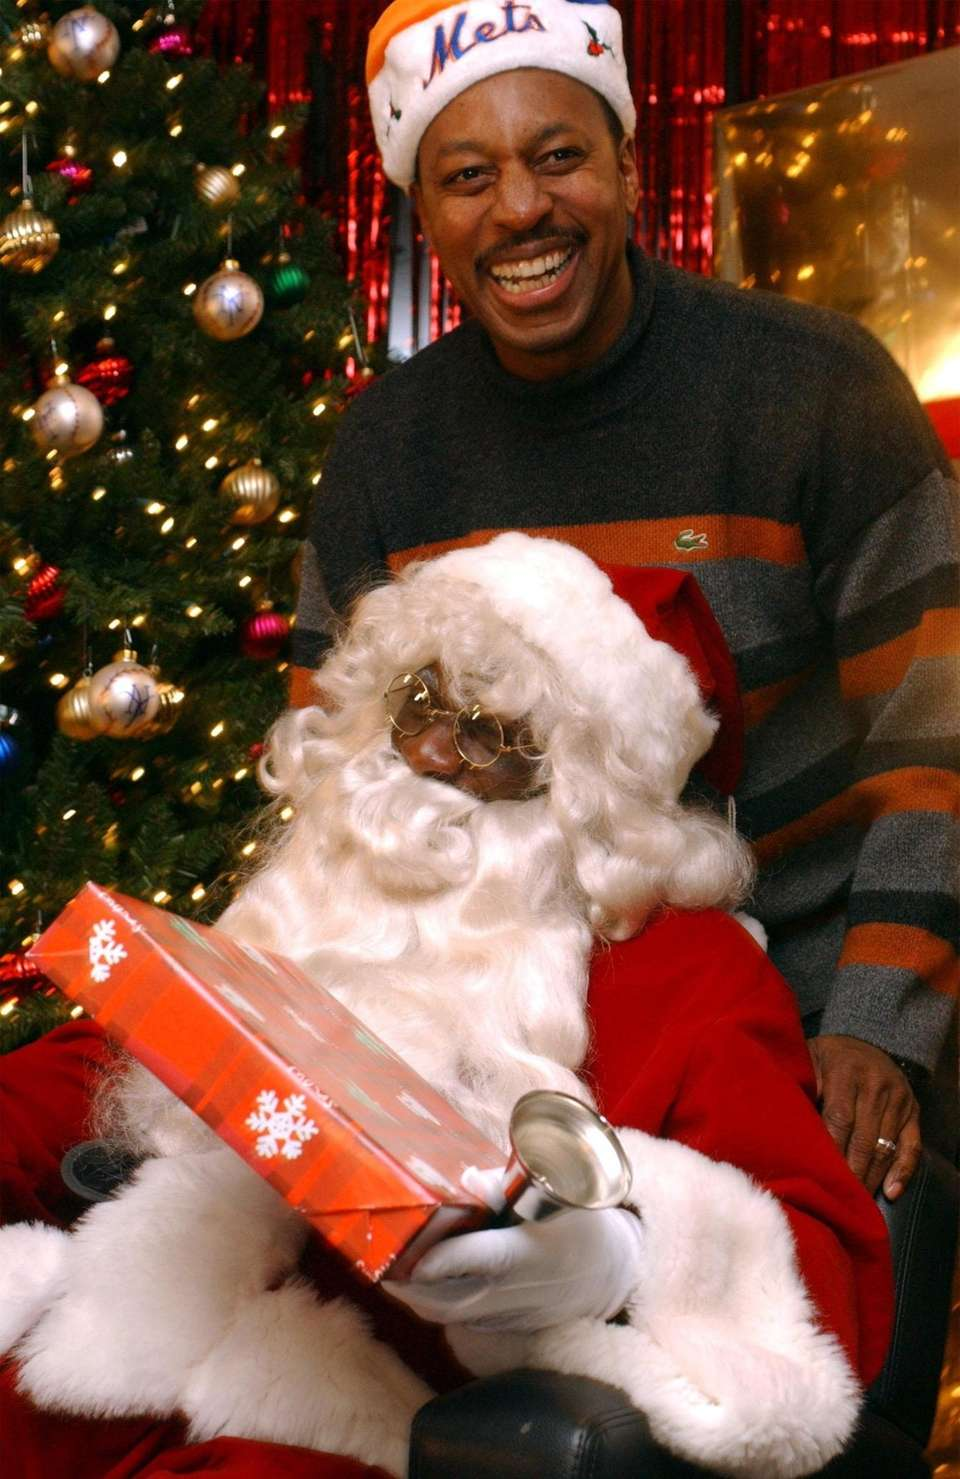 Mike Cameron dressed as Santa during the Mets'